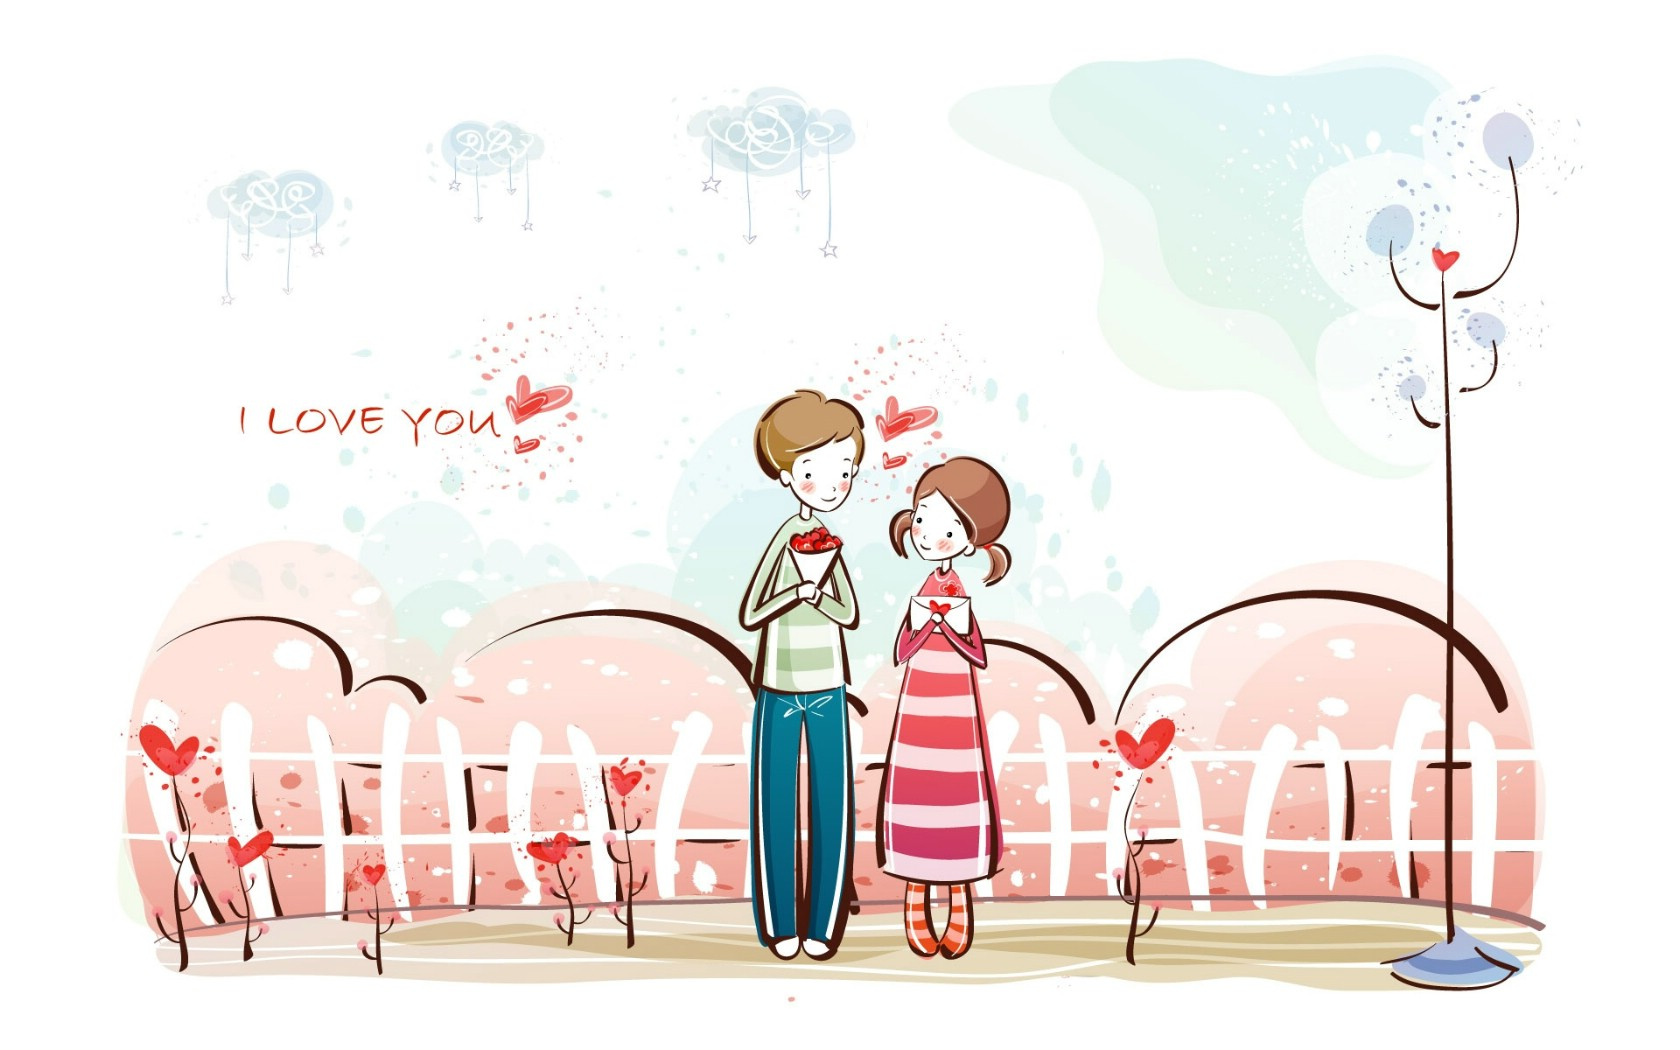 Love Kiss Wallpaper cartoon : ??1680x1050????????????,??????????????-????-??????-????